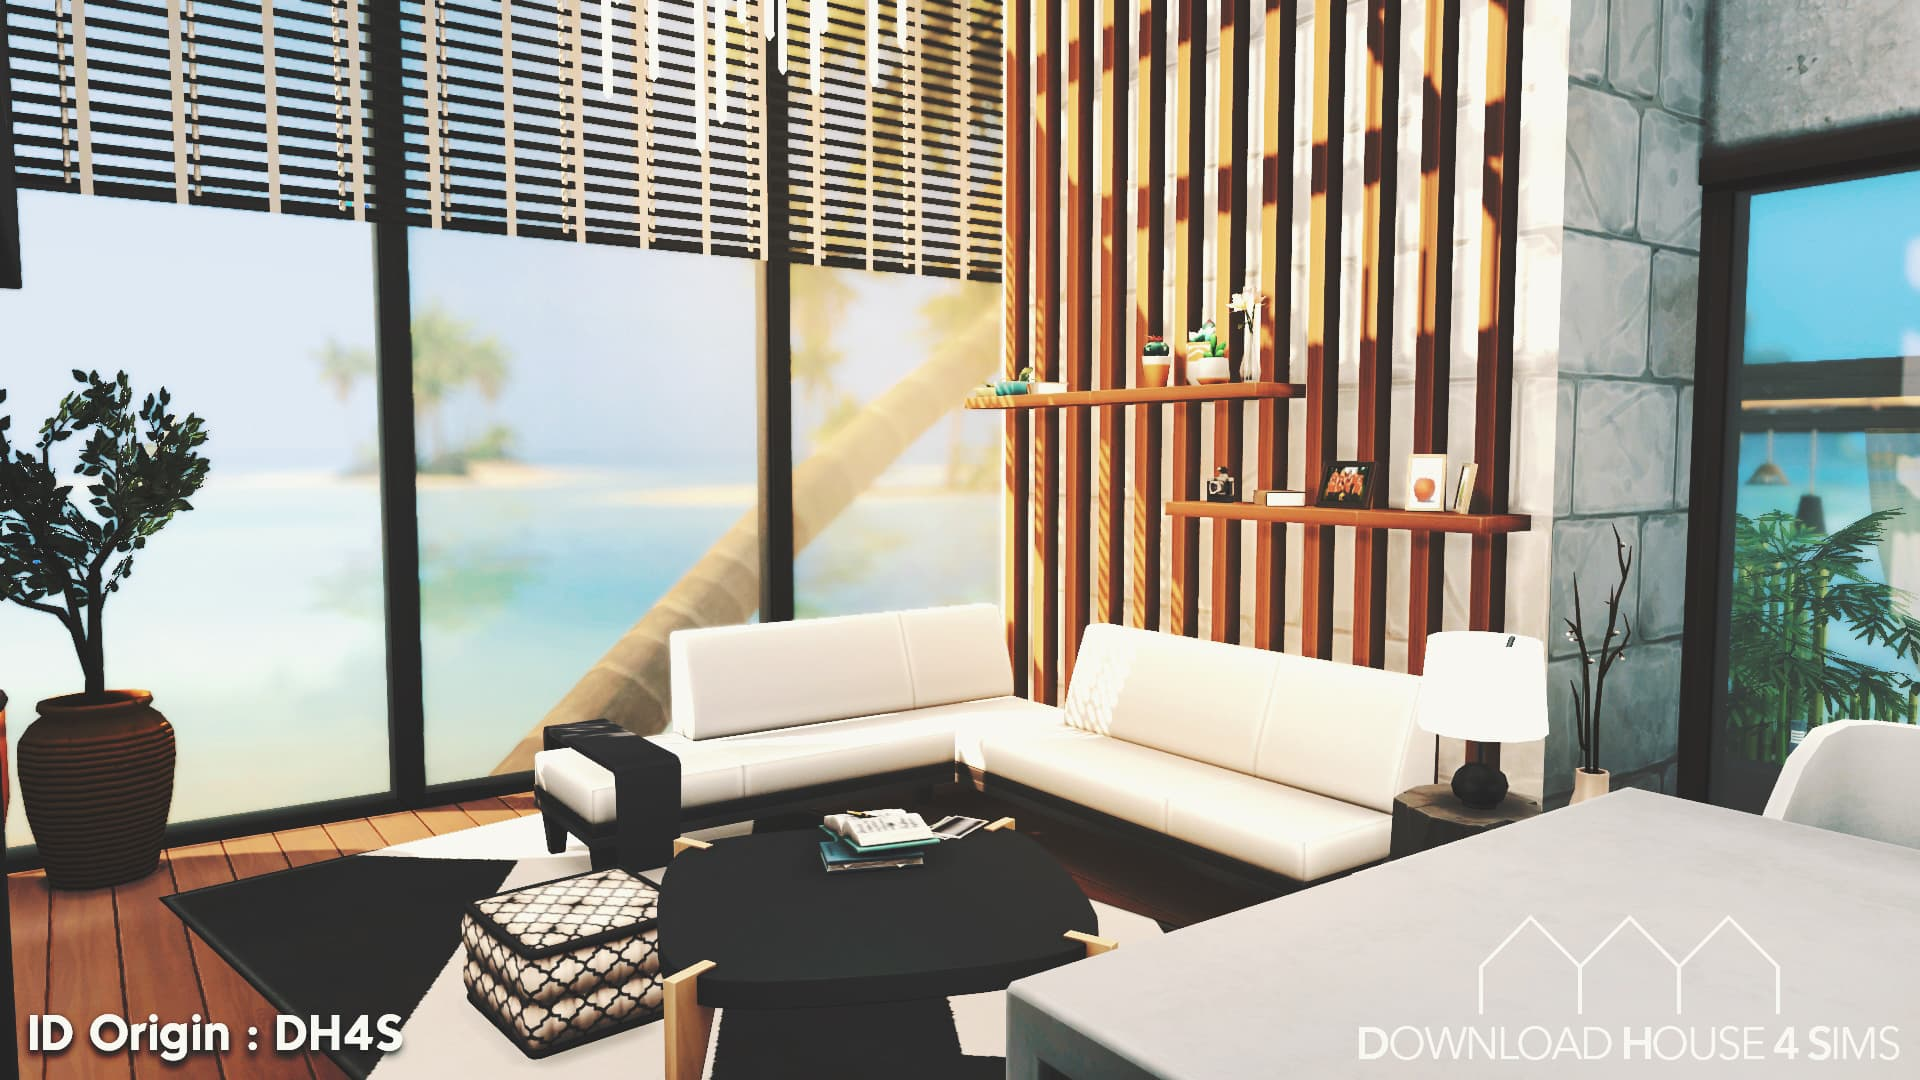 Ultra-modern-beach-house-sims-build-free-download-house-for-sims-9